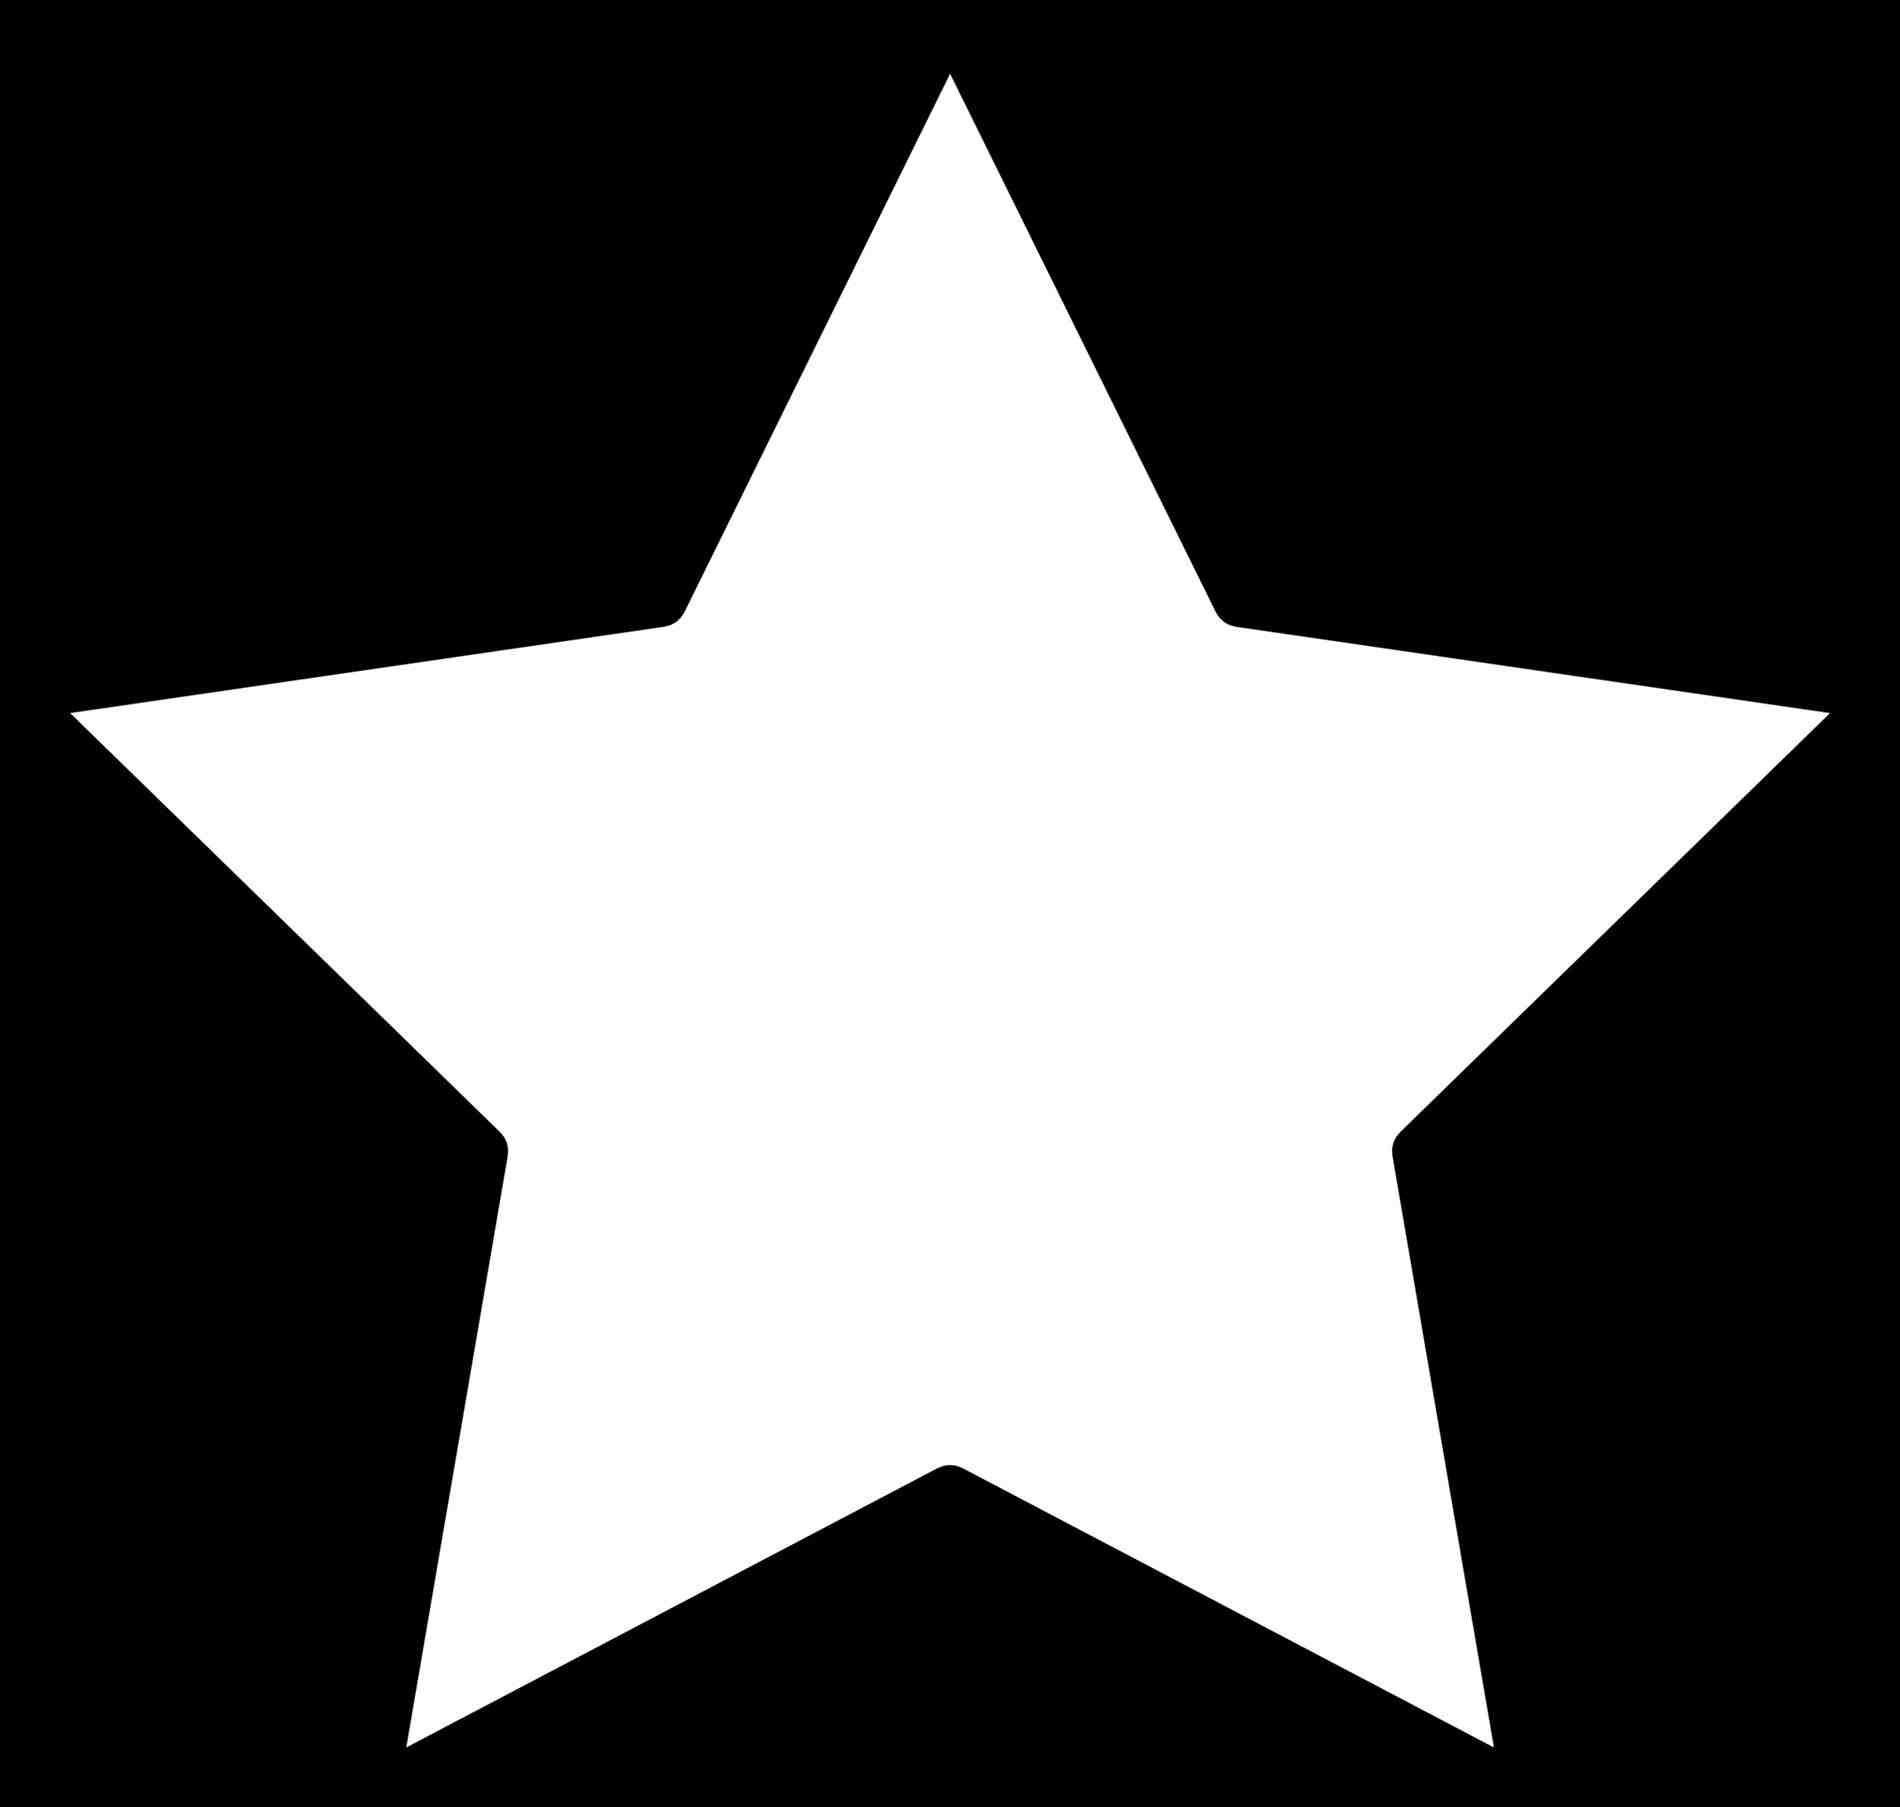 1900x1807 Christmas Star Clipart Black And White Cheminee.website